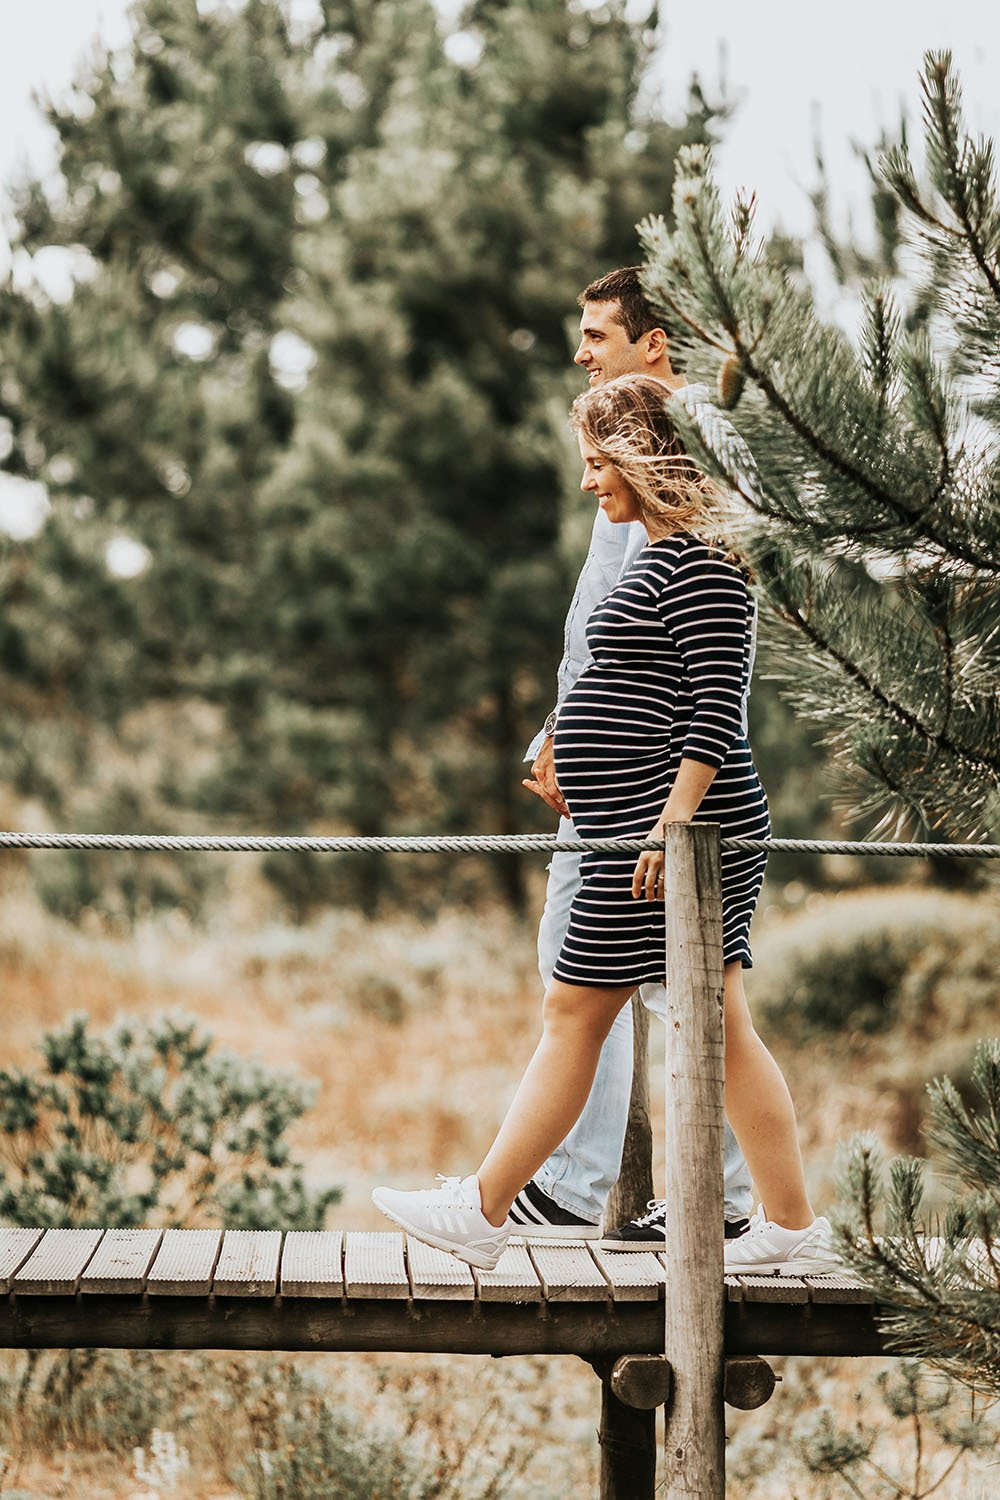 Take a Daily Walk During Pregnancy